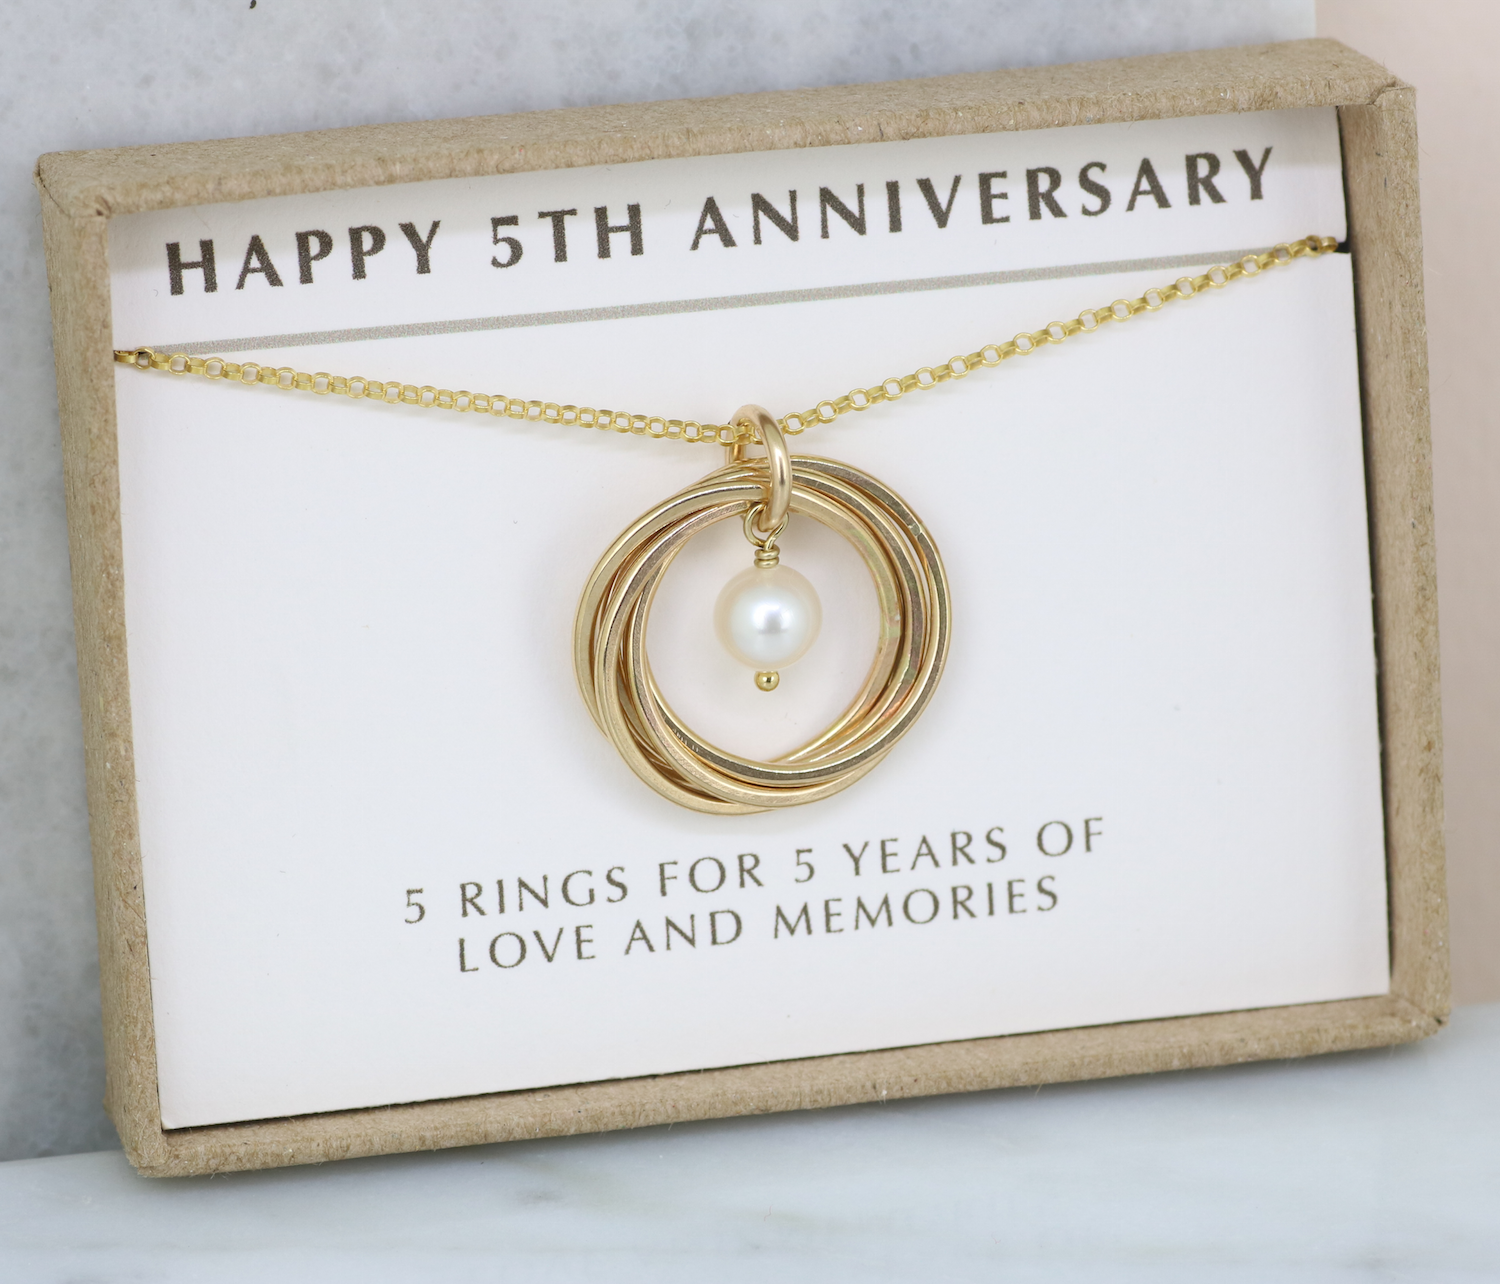 5th anniversary gift for wife, gold necklace for 5 year